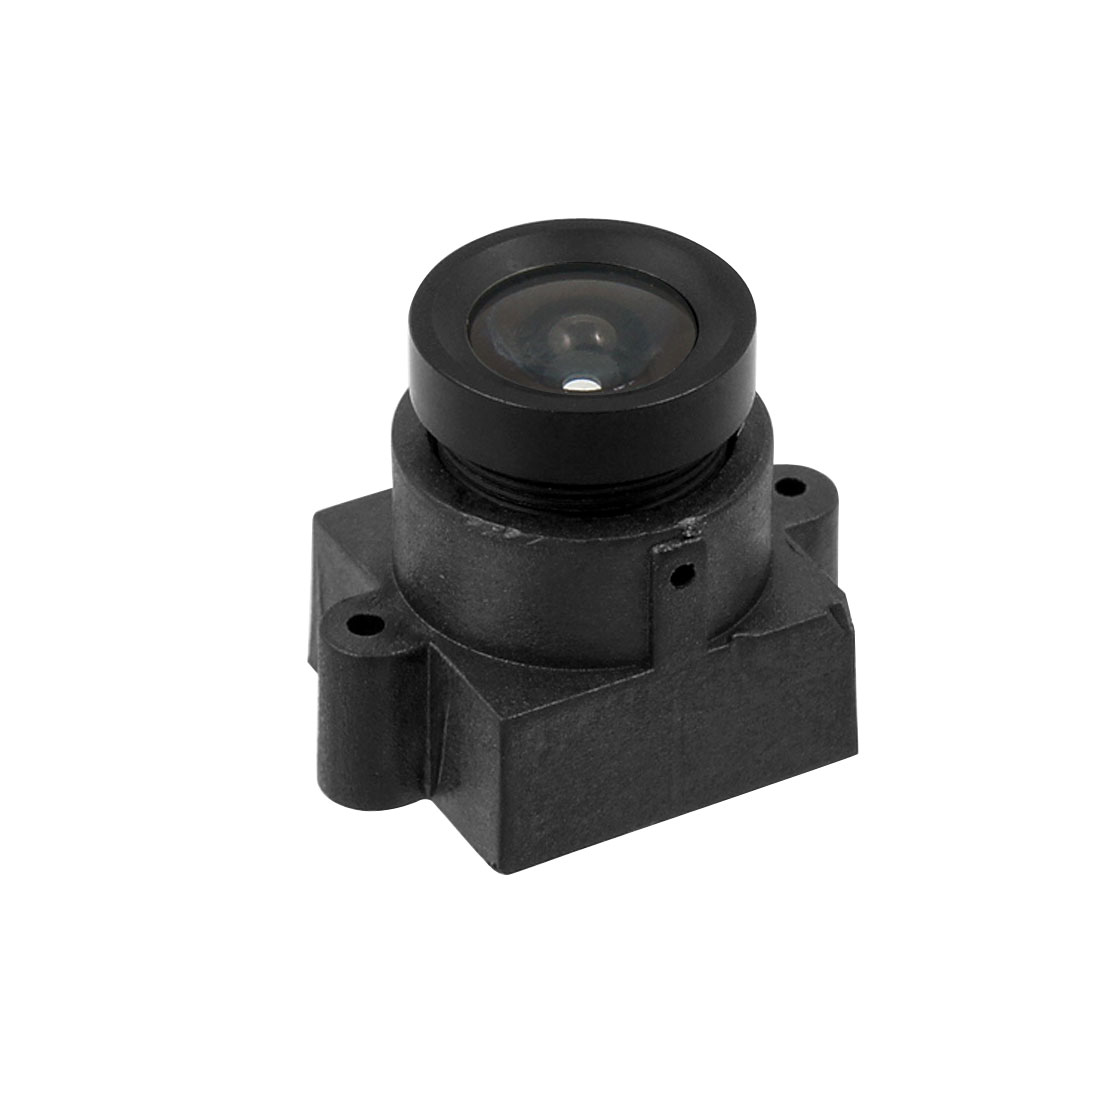 "3.6mm Focal Length 1/3"" Format Board Lens for CCTV Camera"